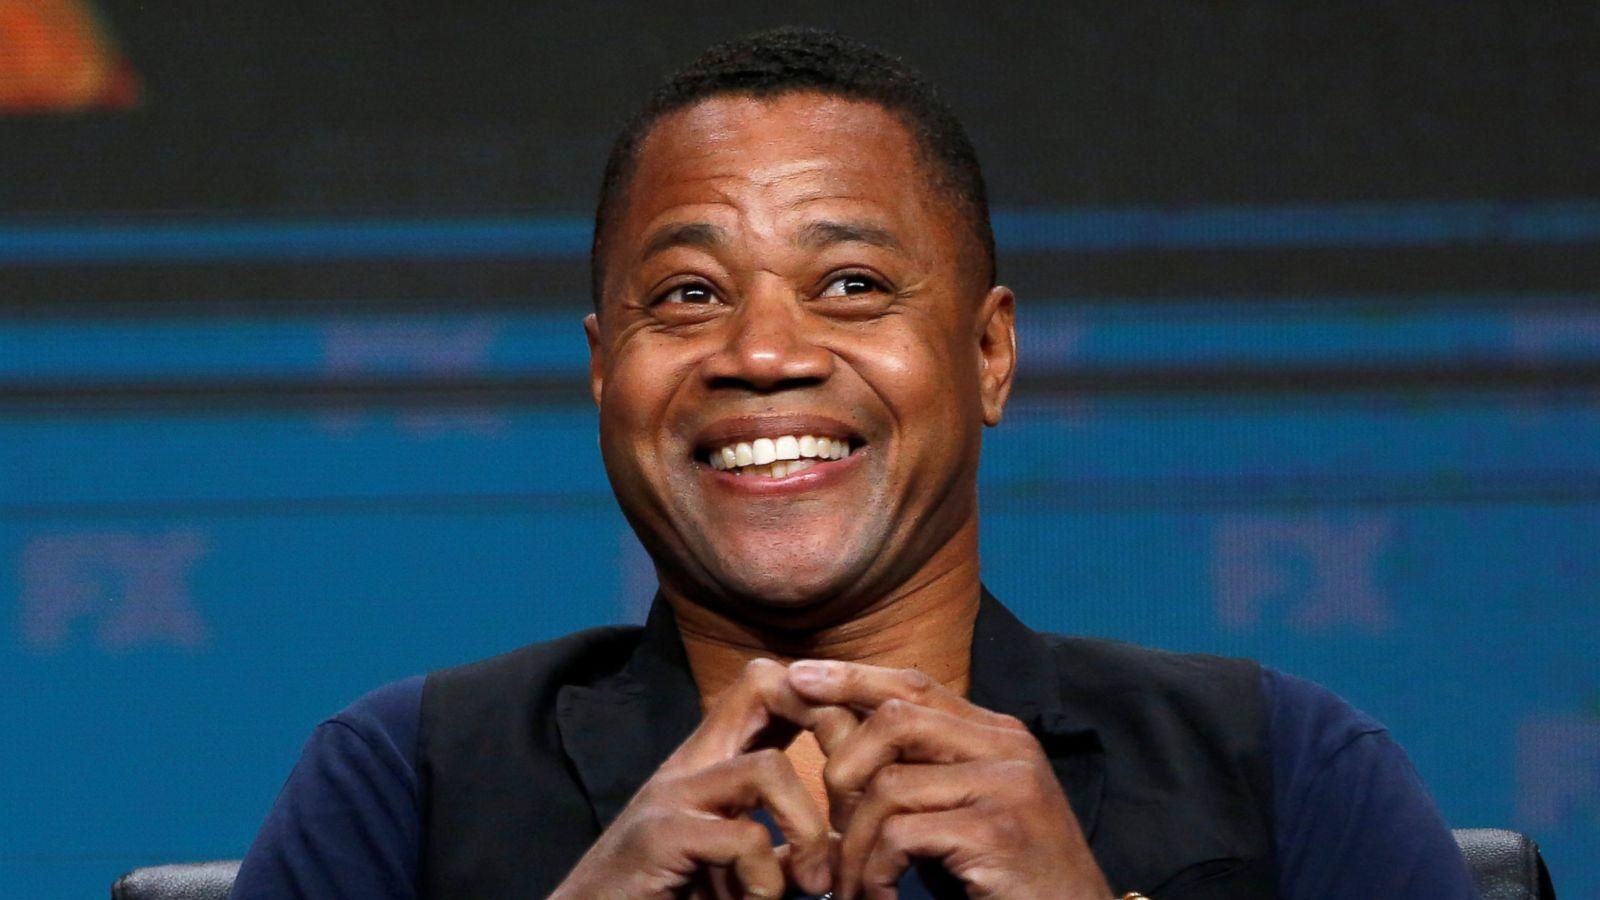 Cuba Gooding Jr. 'Living In The Moment' After Groping Trial Gets Rescheduled